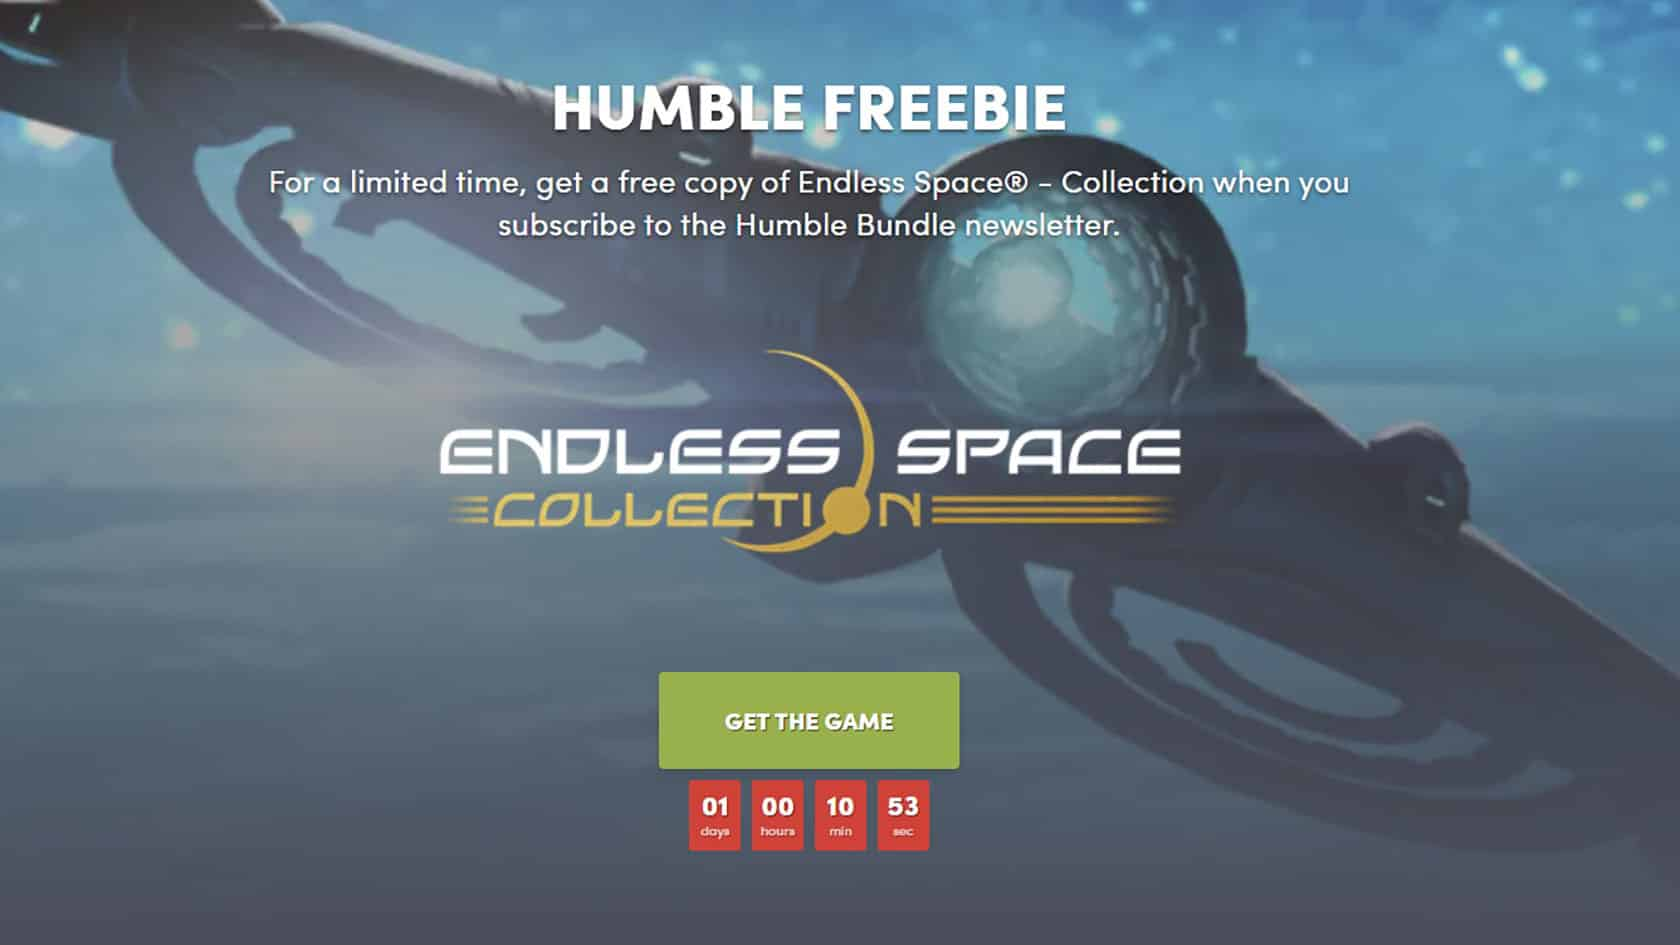 humbe freebie endless space collection babt